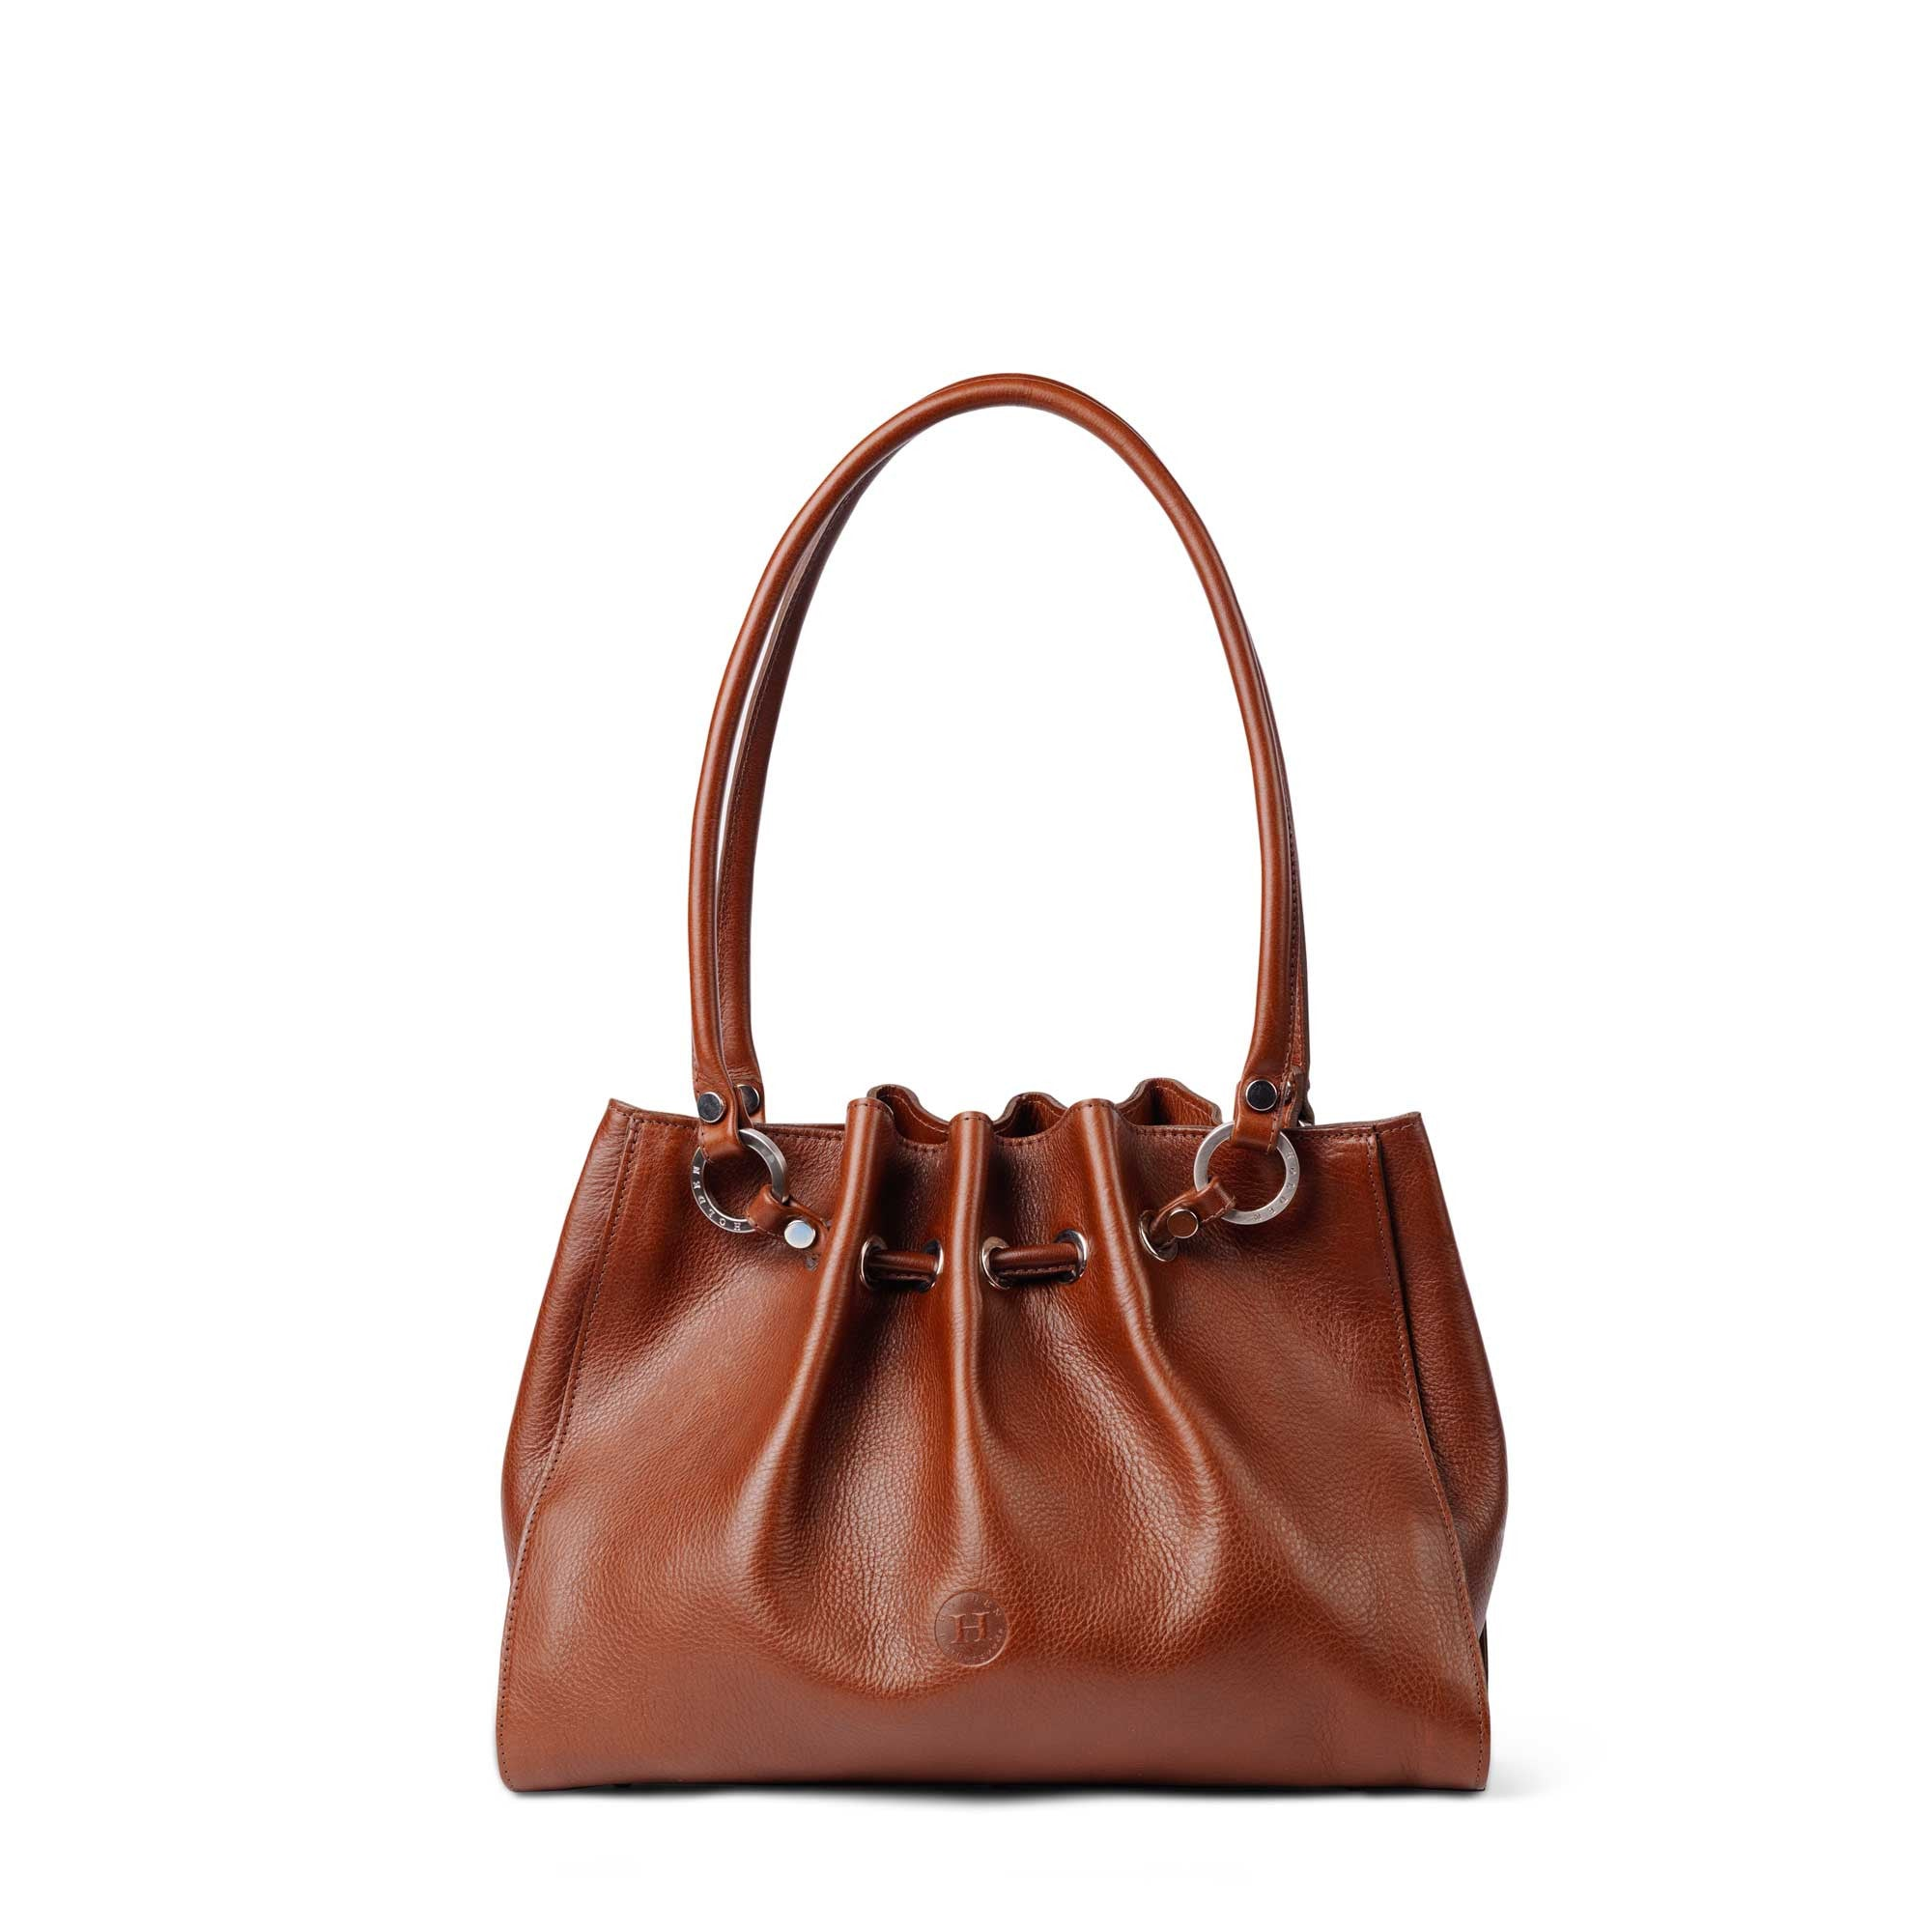 Siobhan Medium Leather Tote Chestnut - Holden Leathergoods, leather bags handmade in Ireland